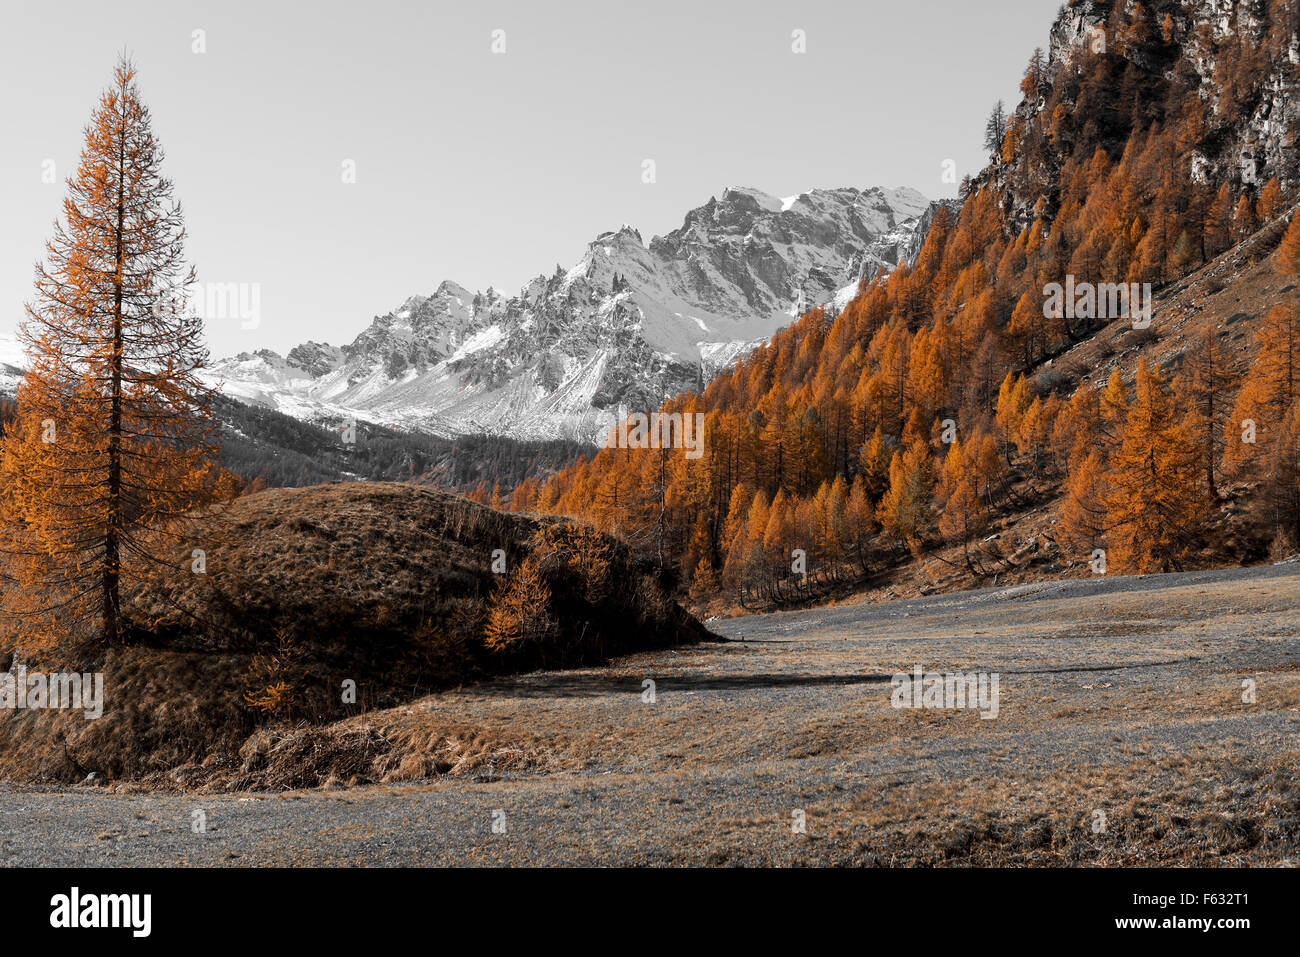 Autumn colors at the Devero Alp in a beautiful sunset with last ray of light on the larches, Piedmont - Italy Stock Photo